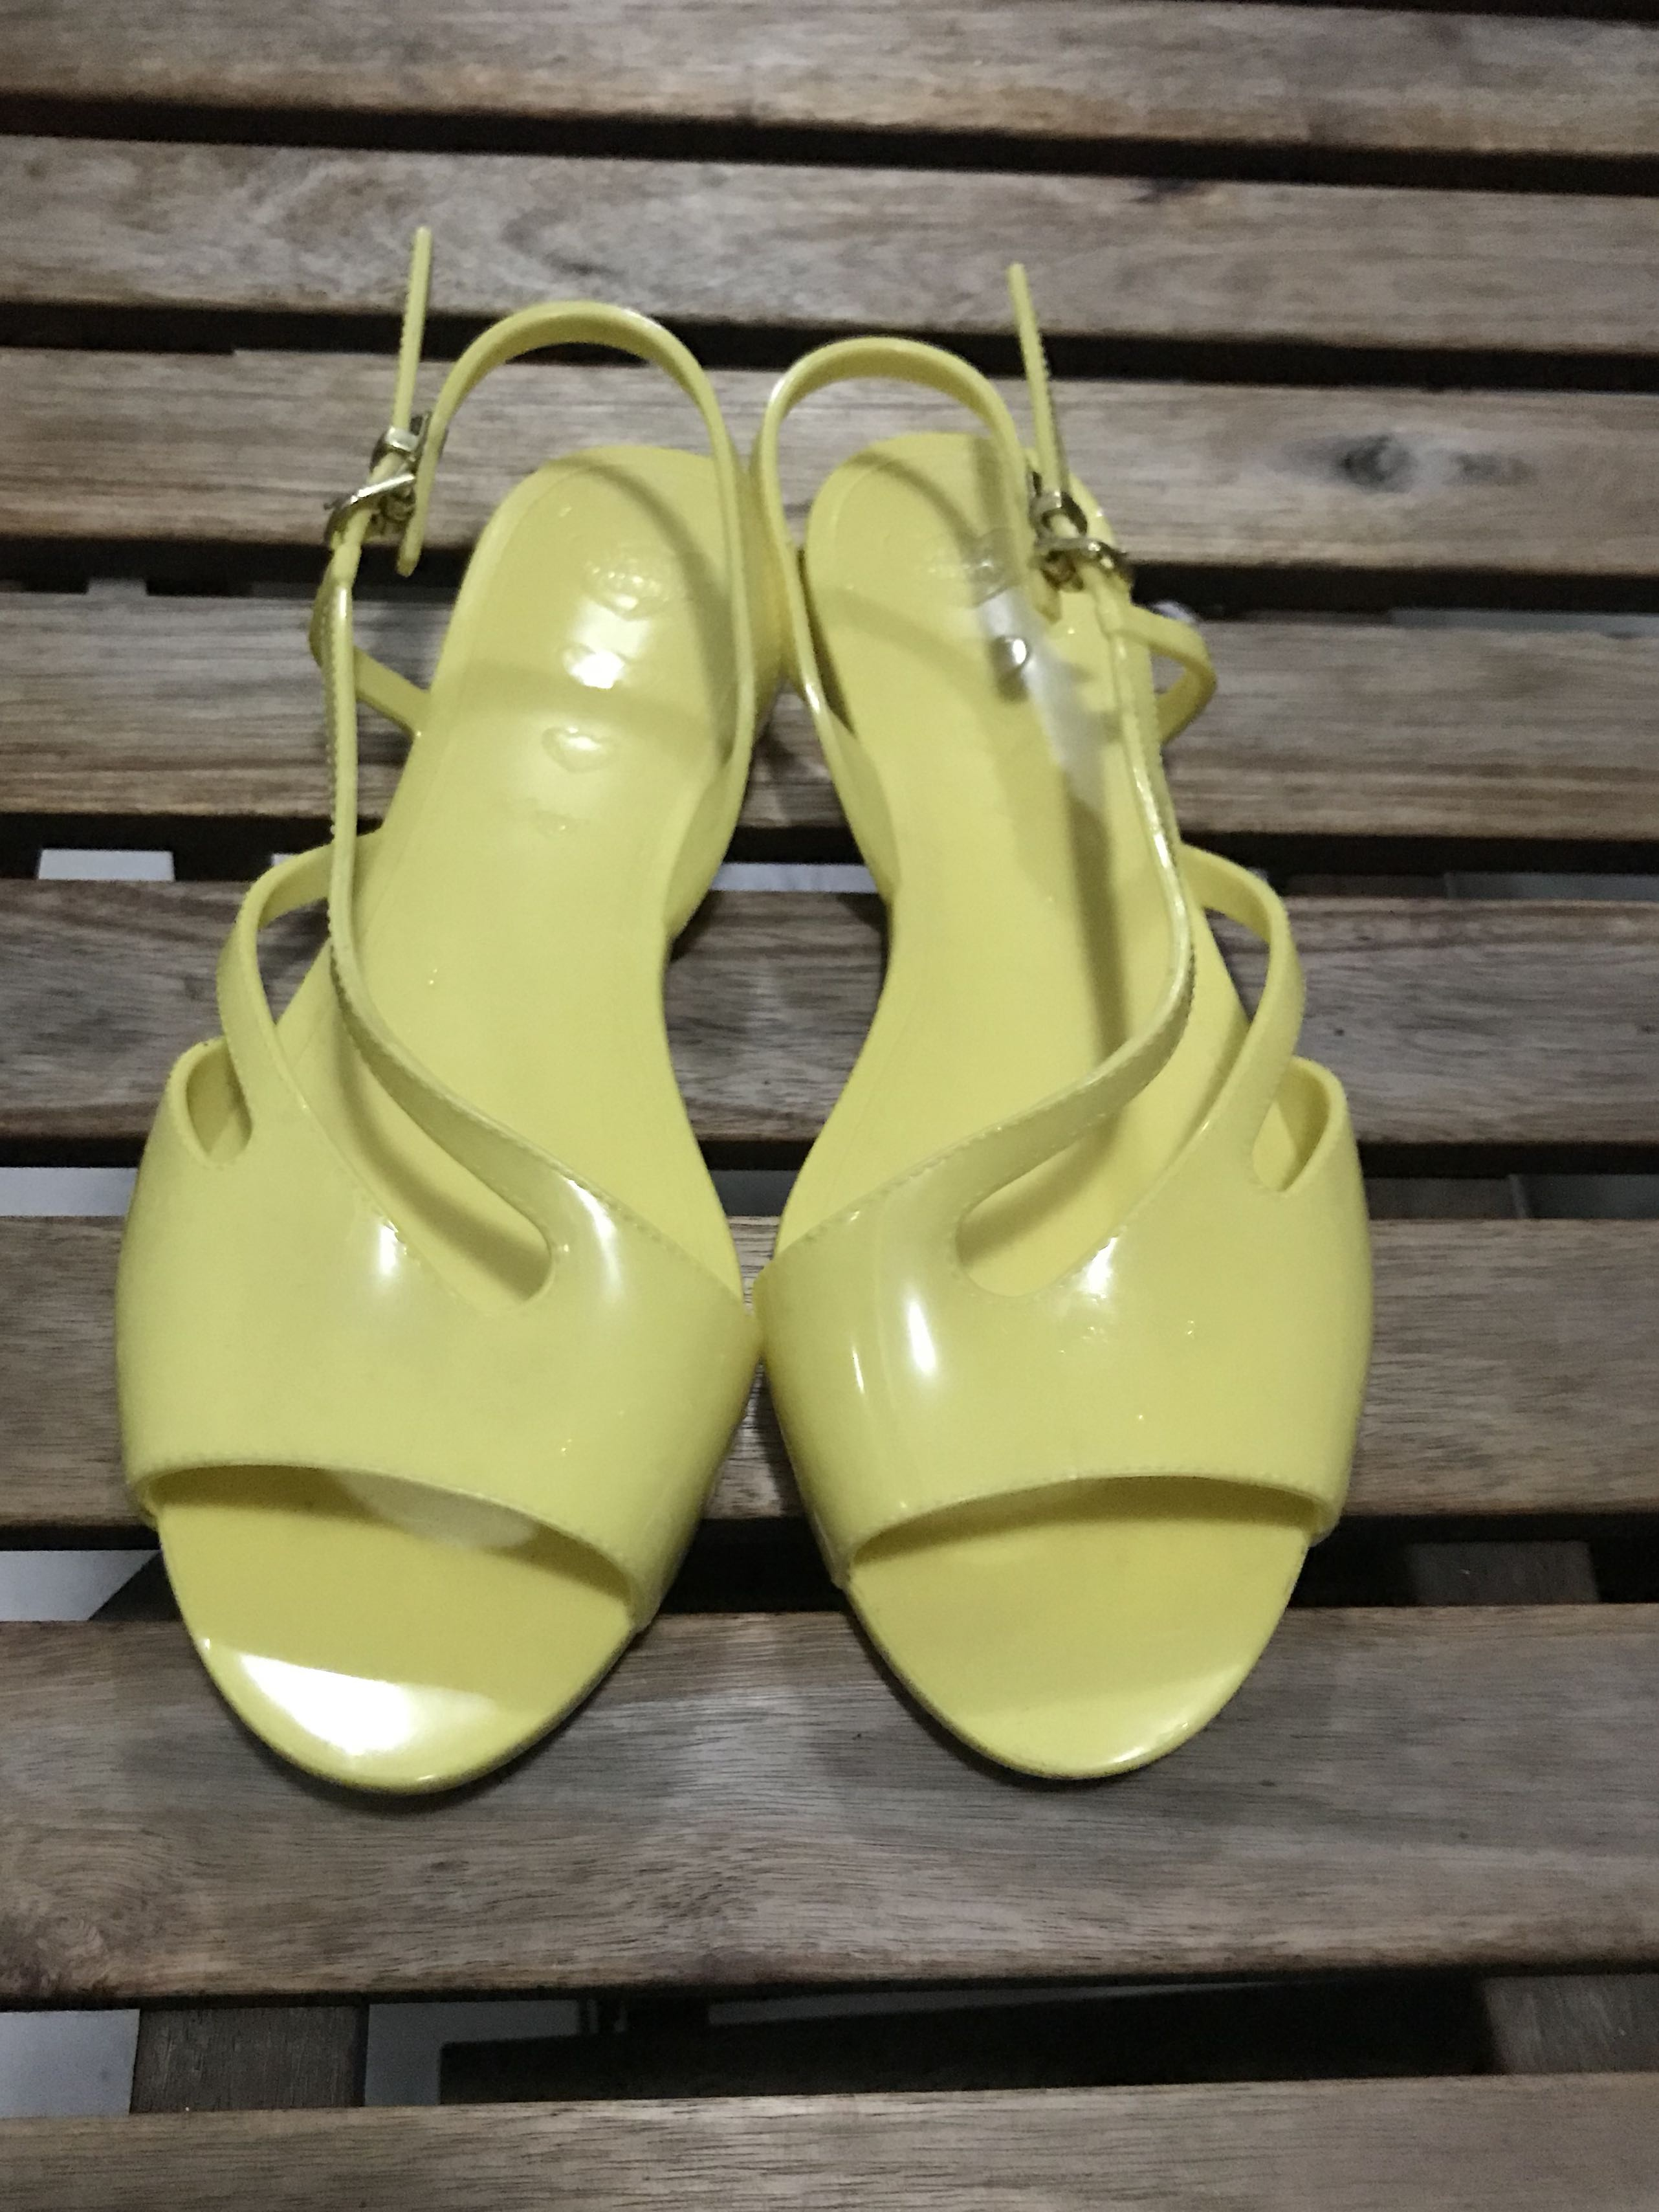 Jelly Bunny's Sandals (Yellow Colour